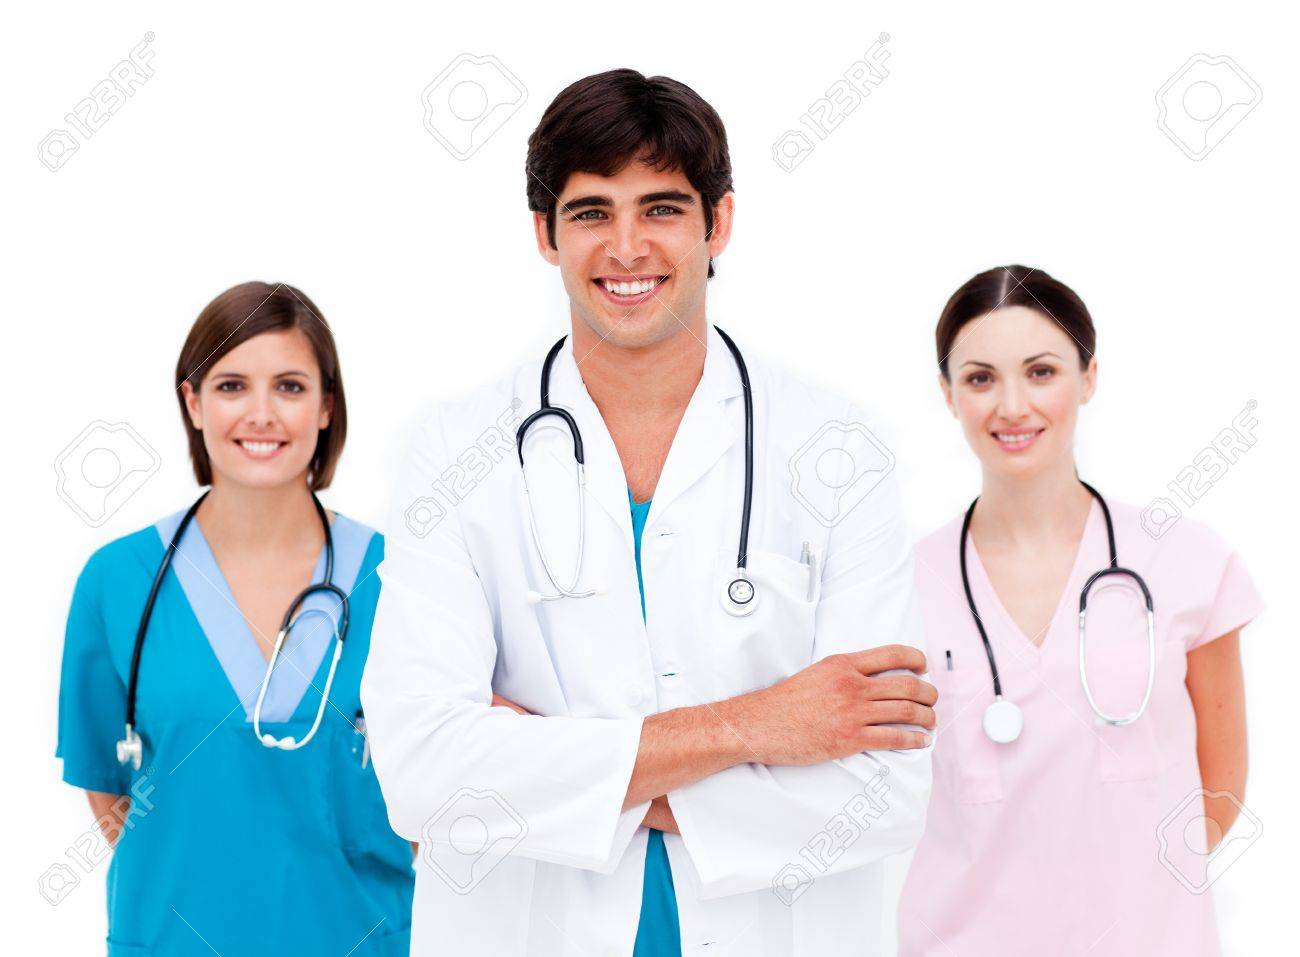 Surgeon with two nurses behind him Stock Photo - 10095138